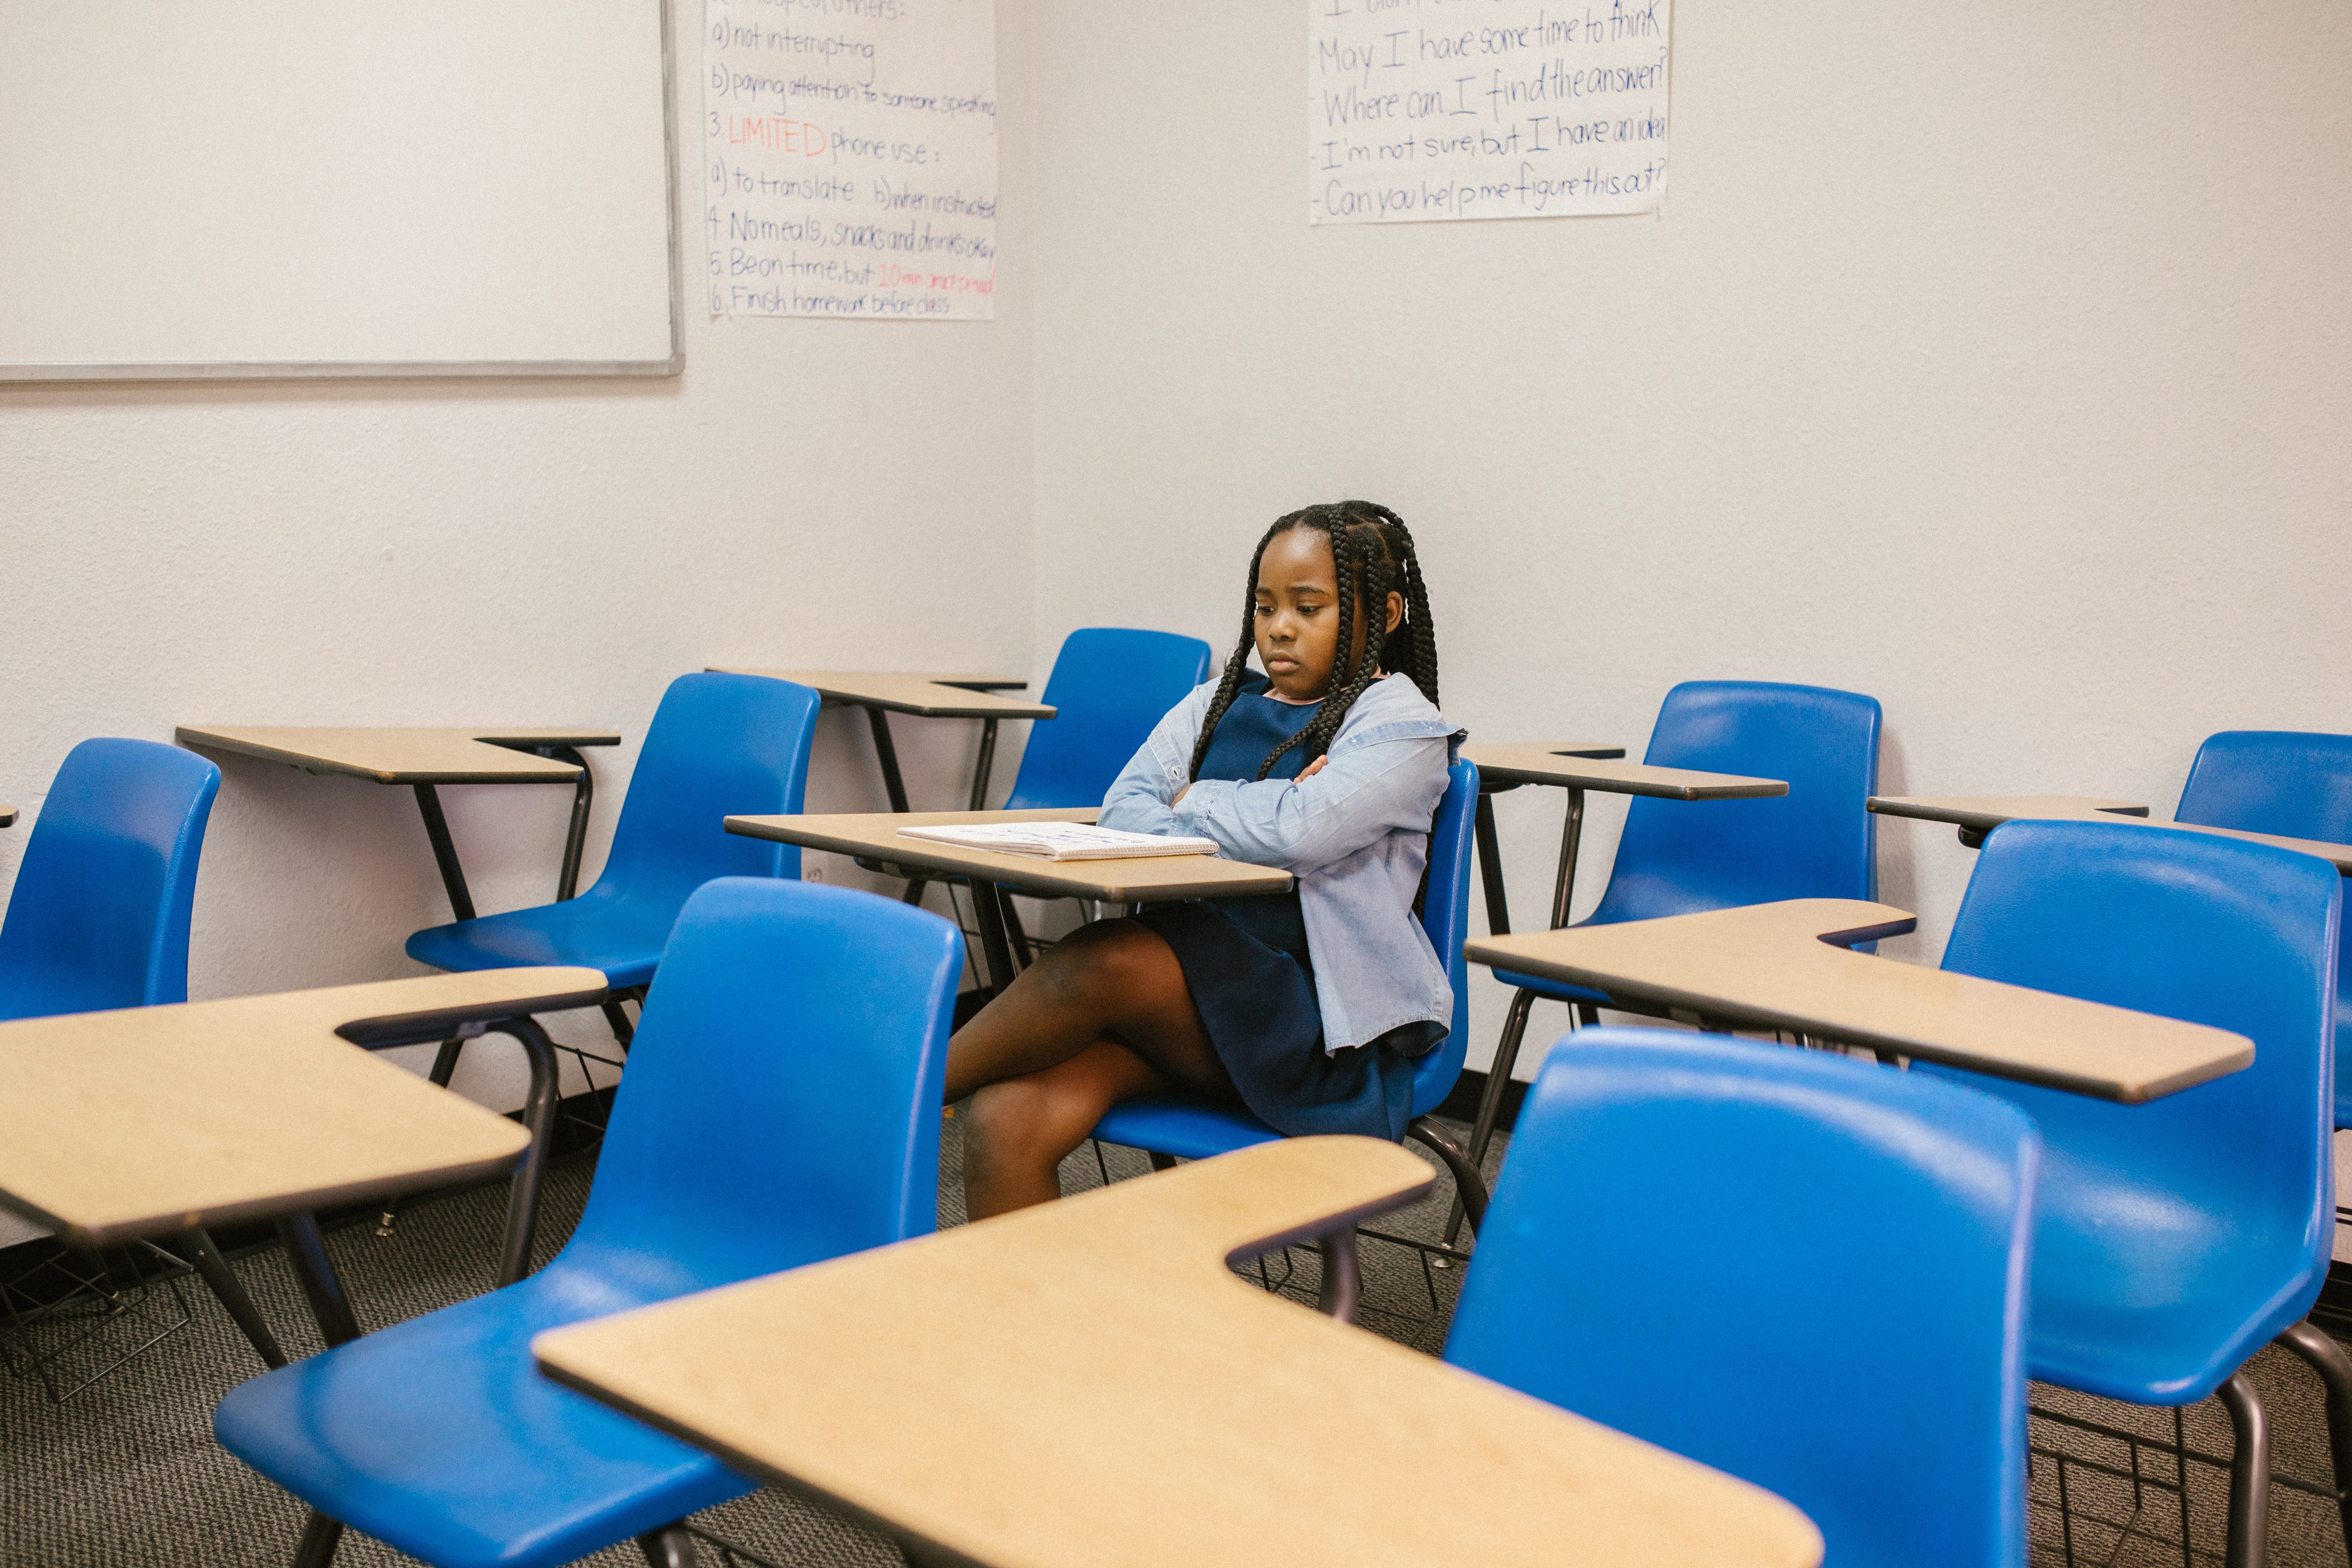 The student sat on her seat, looking gloomy. | Photo: Pexels/RODNAE Productions